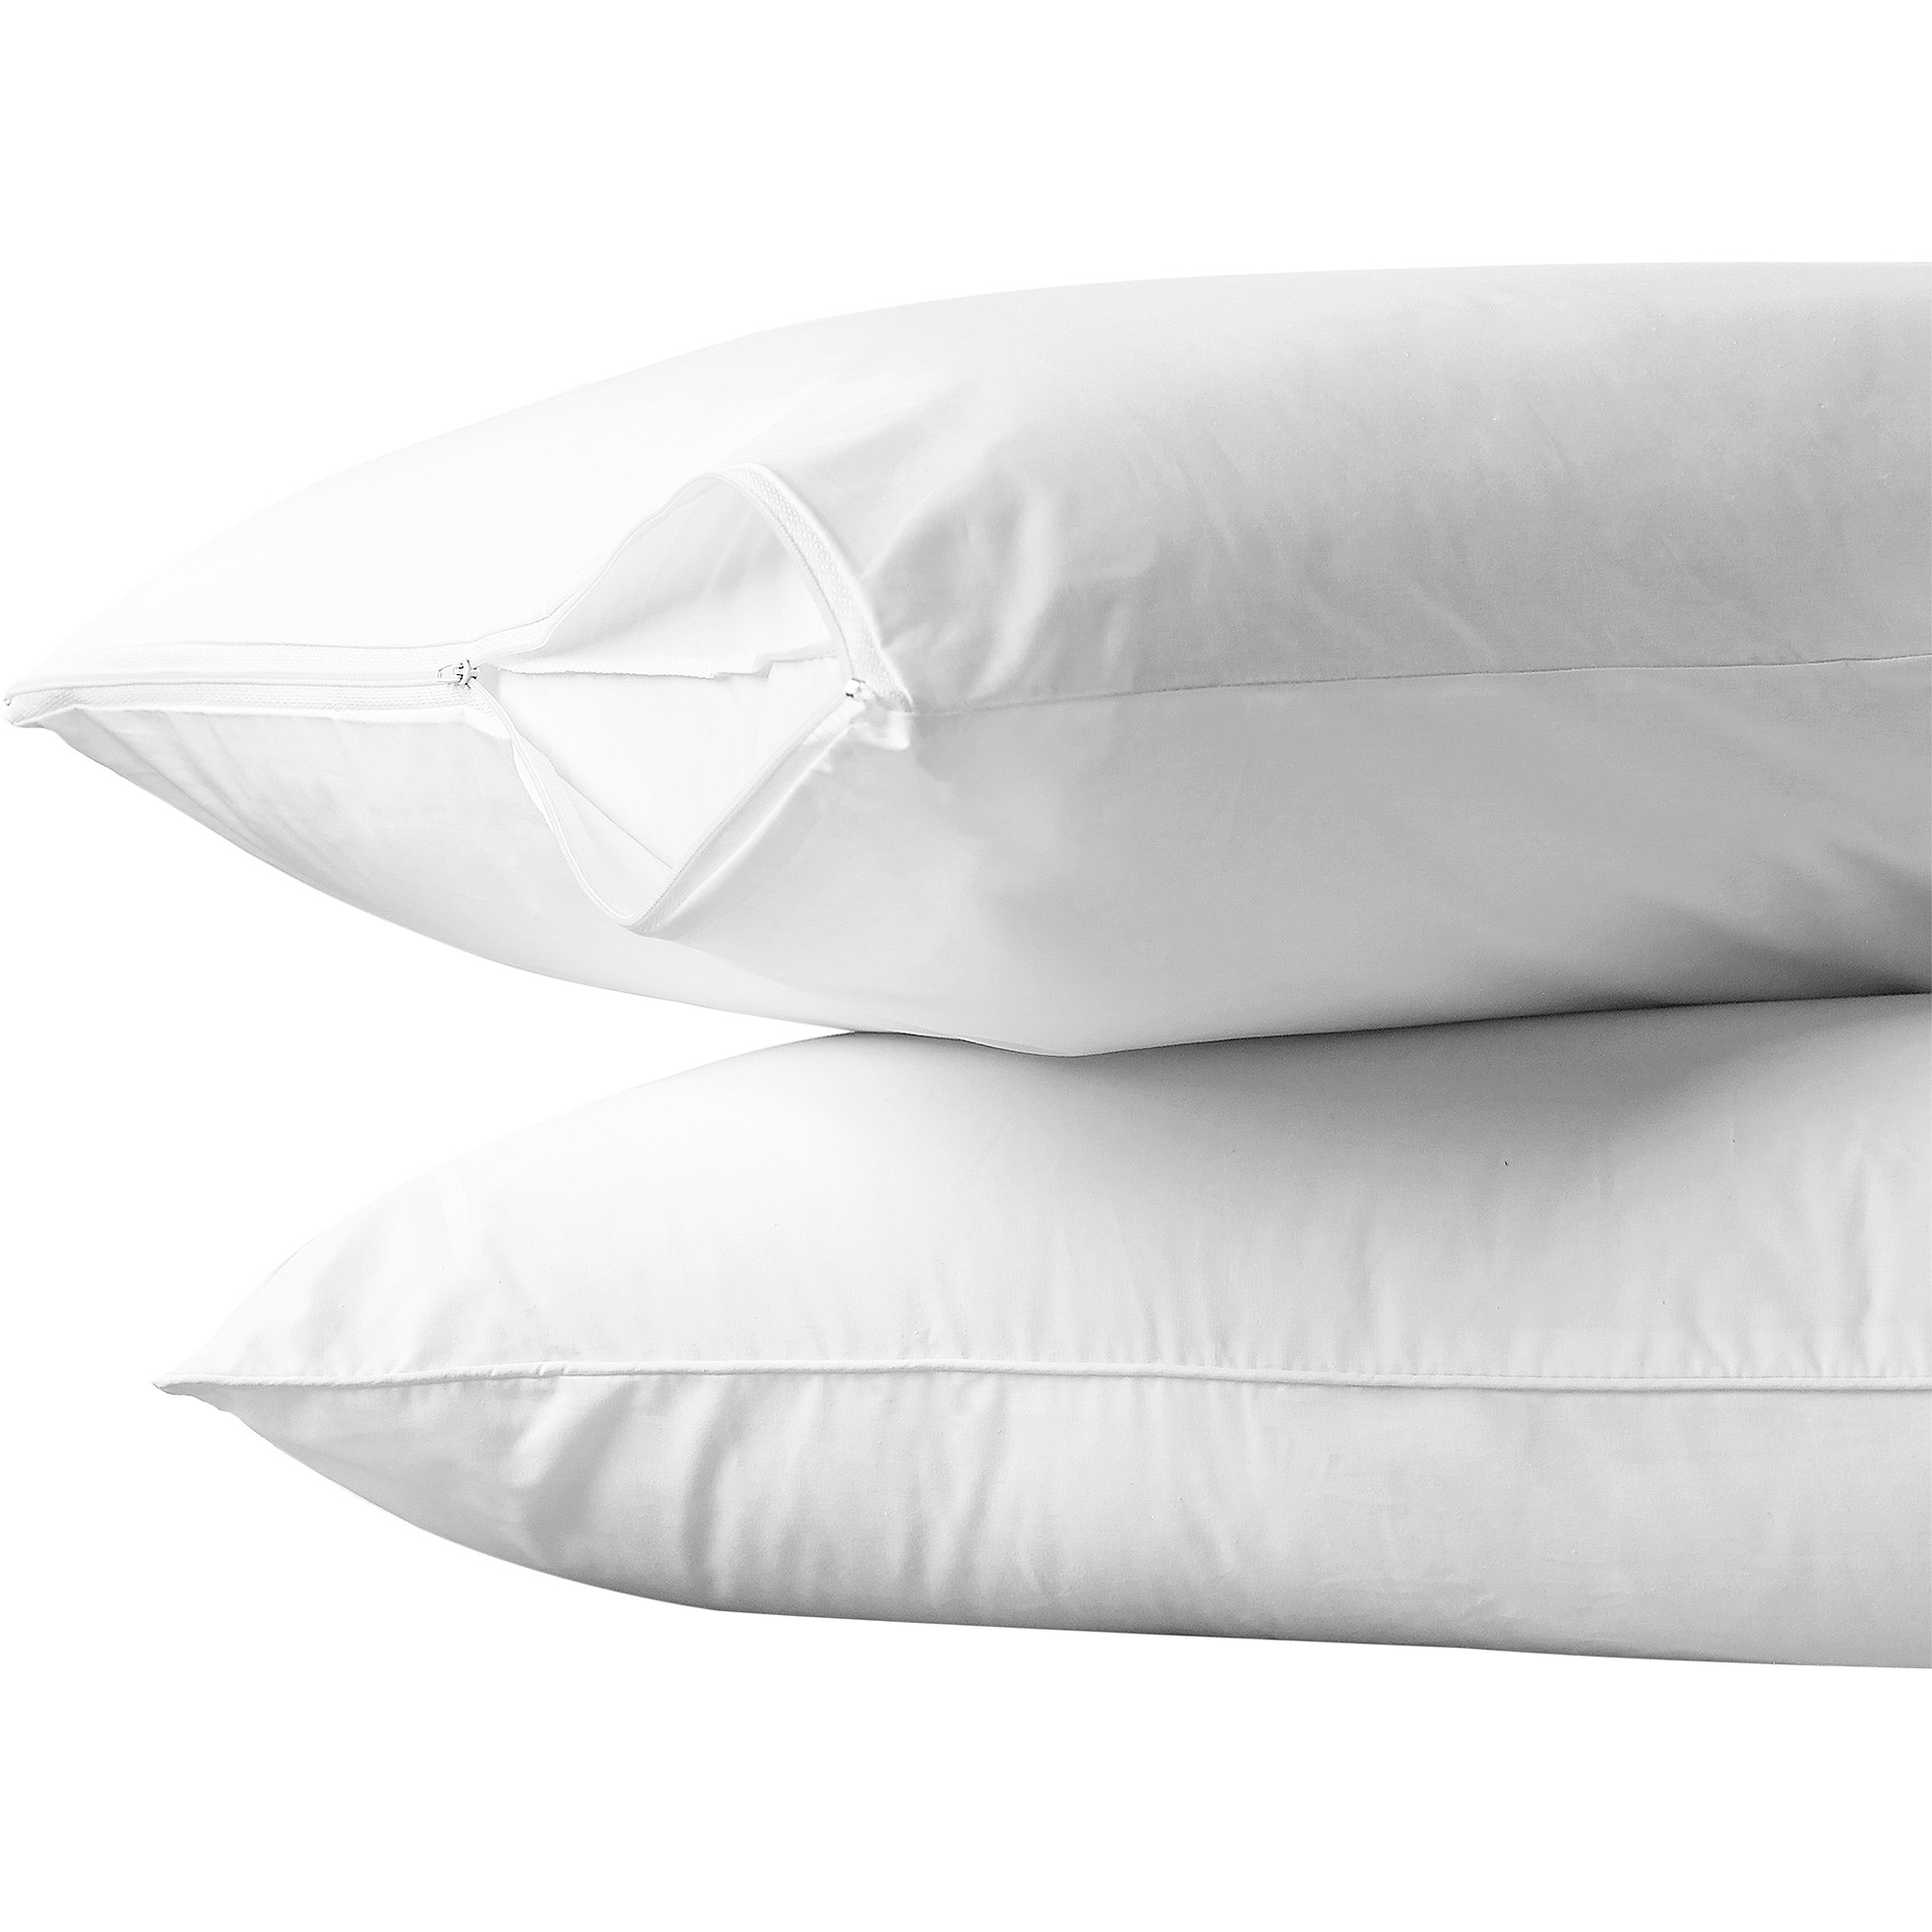 AllerEase Cotton Allergy Protection Pillow Protector, 2pk by American Textile